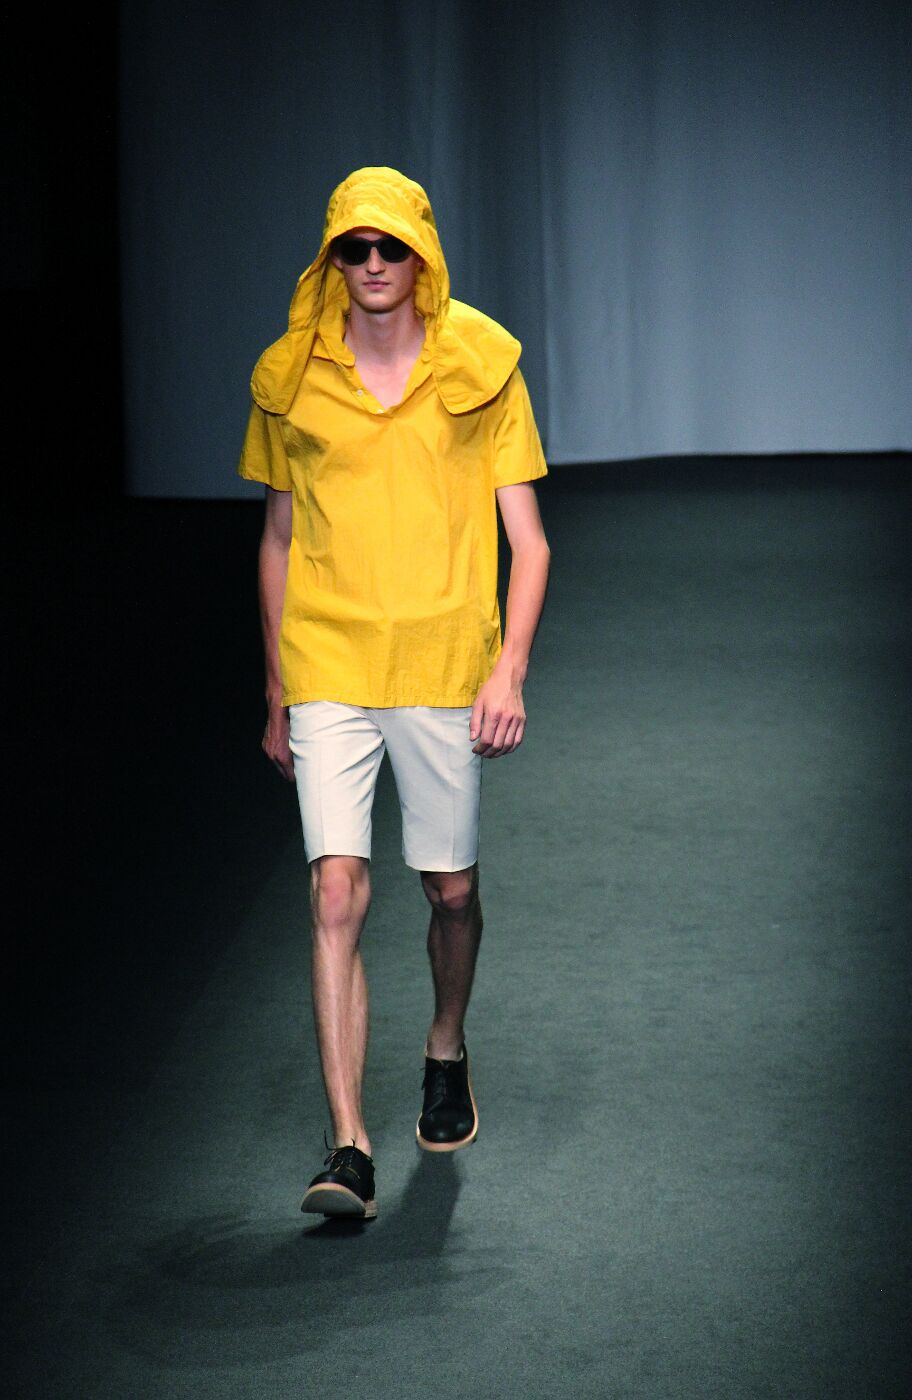 nicole-farhi-spring-summer-2012-men-collection-milano-fashion-week-2012-nicole-farhi-primavera-estate-fashion-show-catwalk